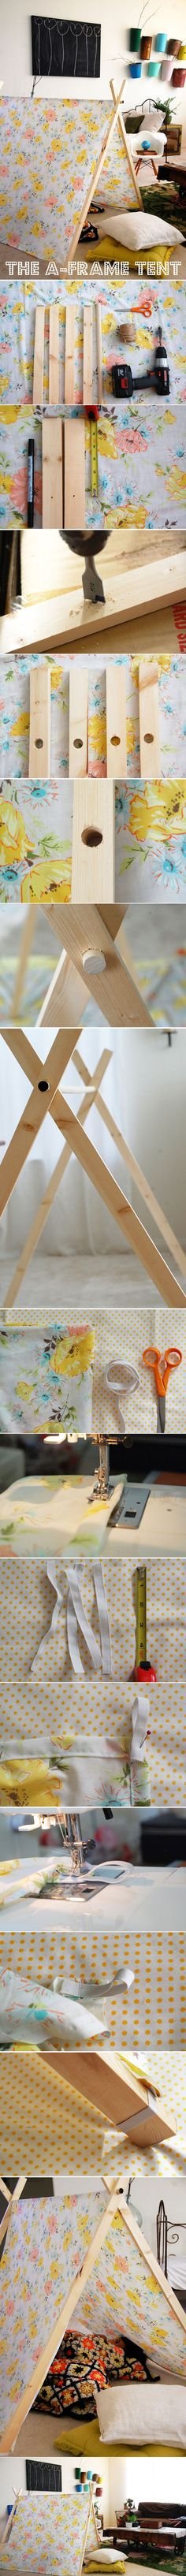 DIY Tutorial: A-Frame Tent